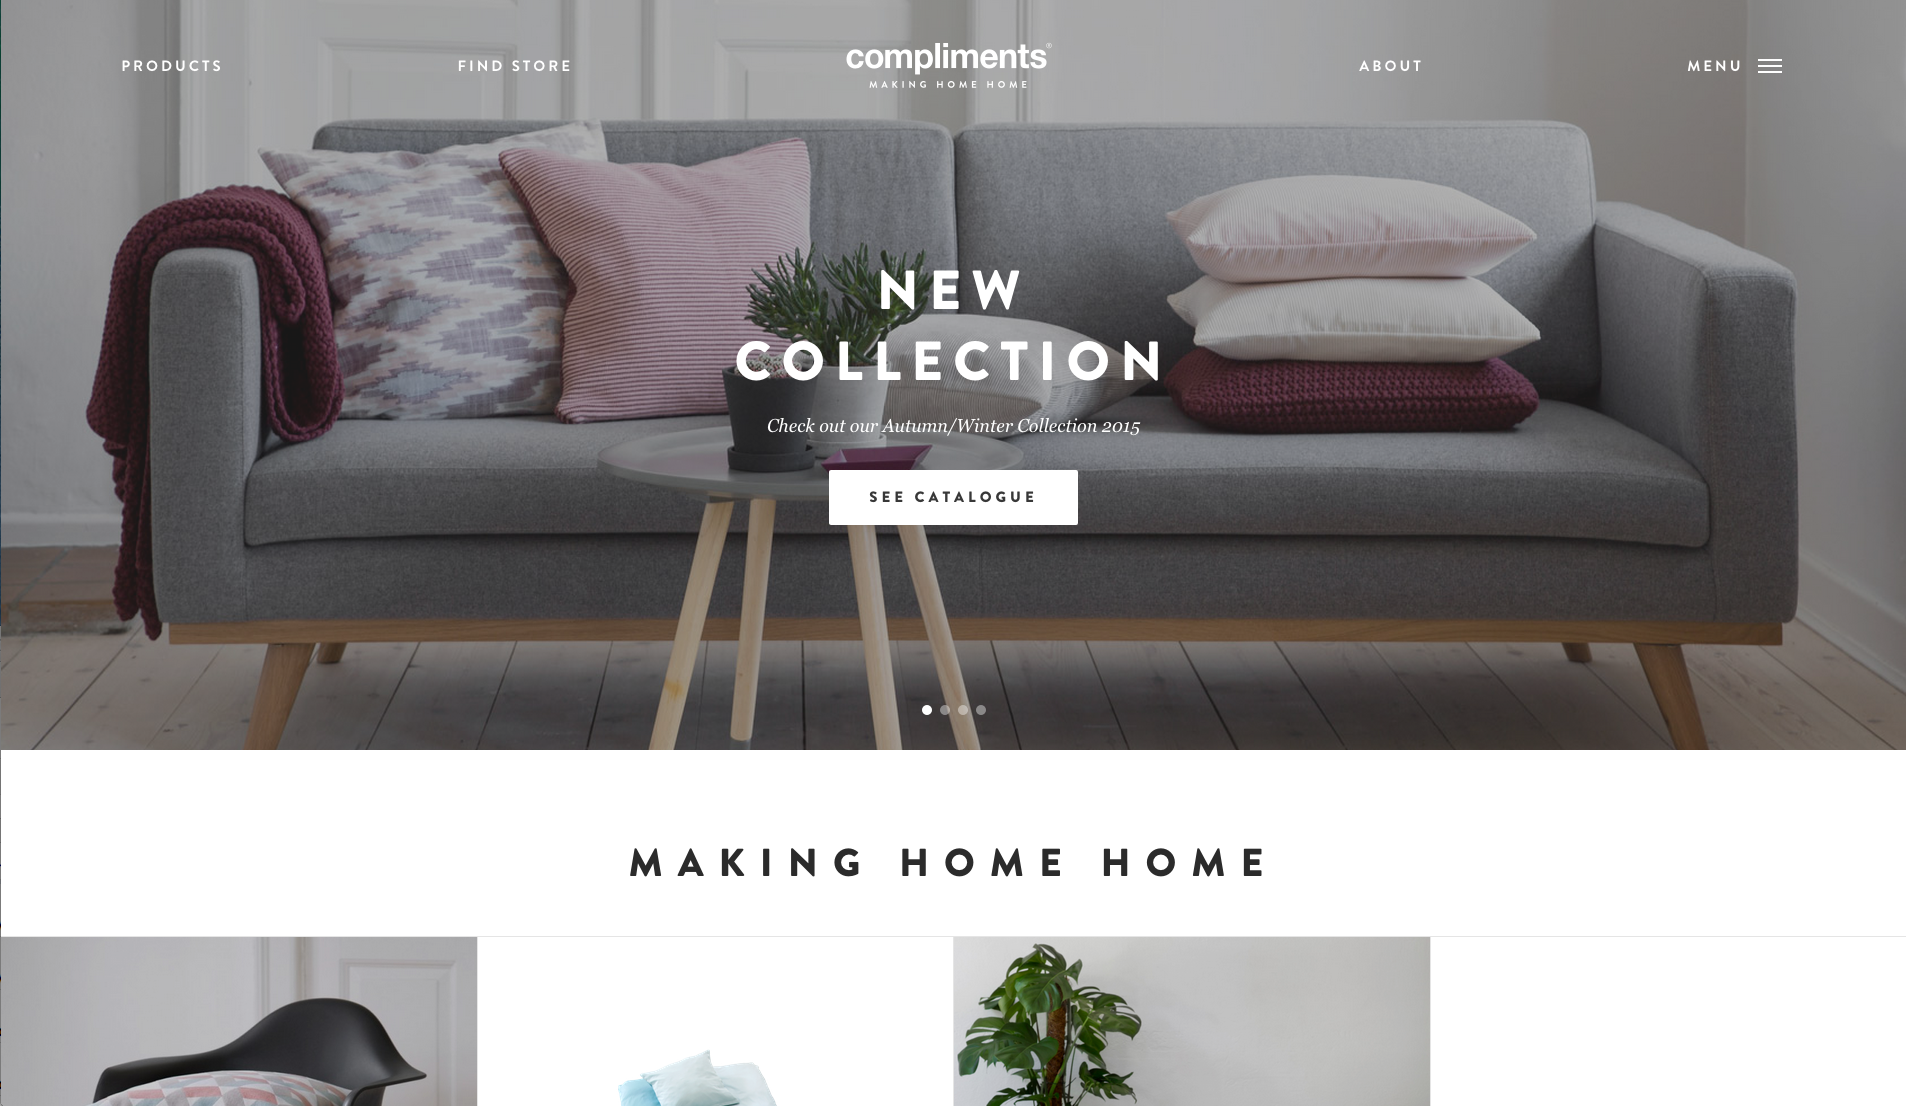 photo of a comfortable sofa behind crisp, white text that says 'New Collection,' presumably of trendy furniture